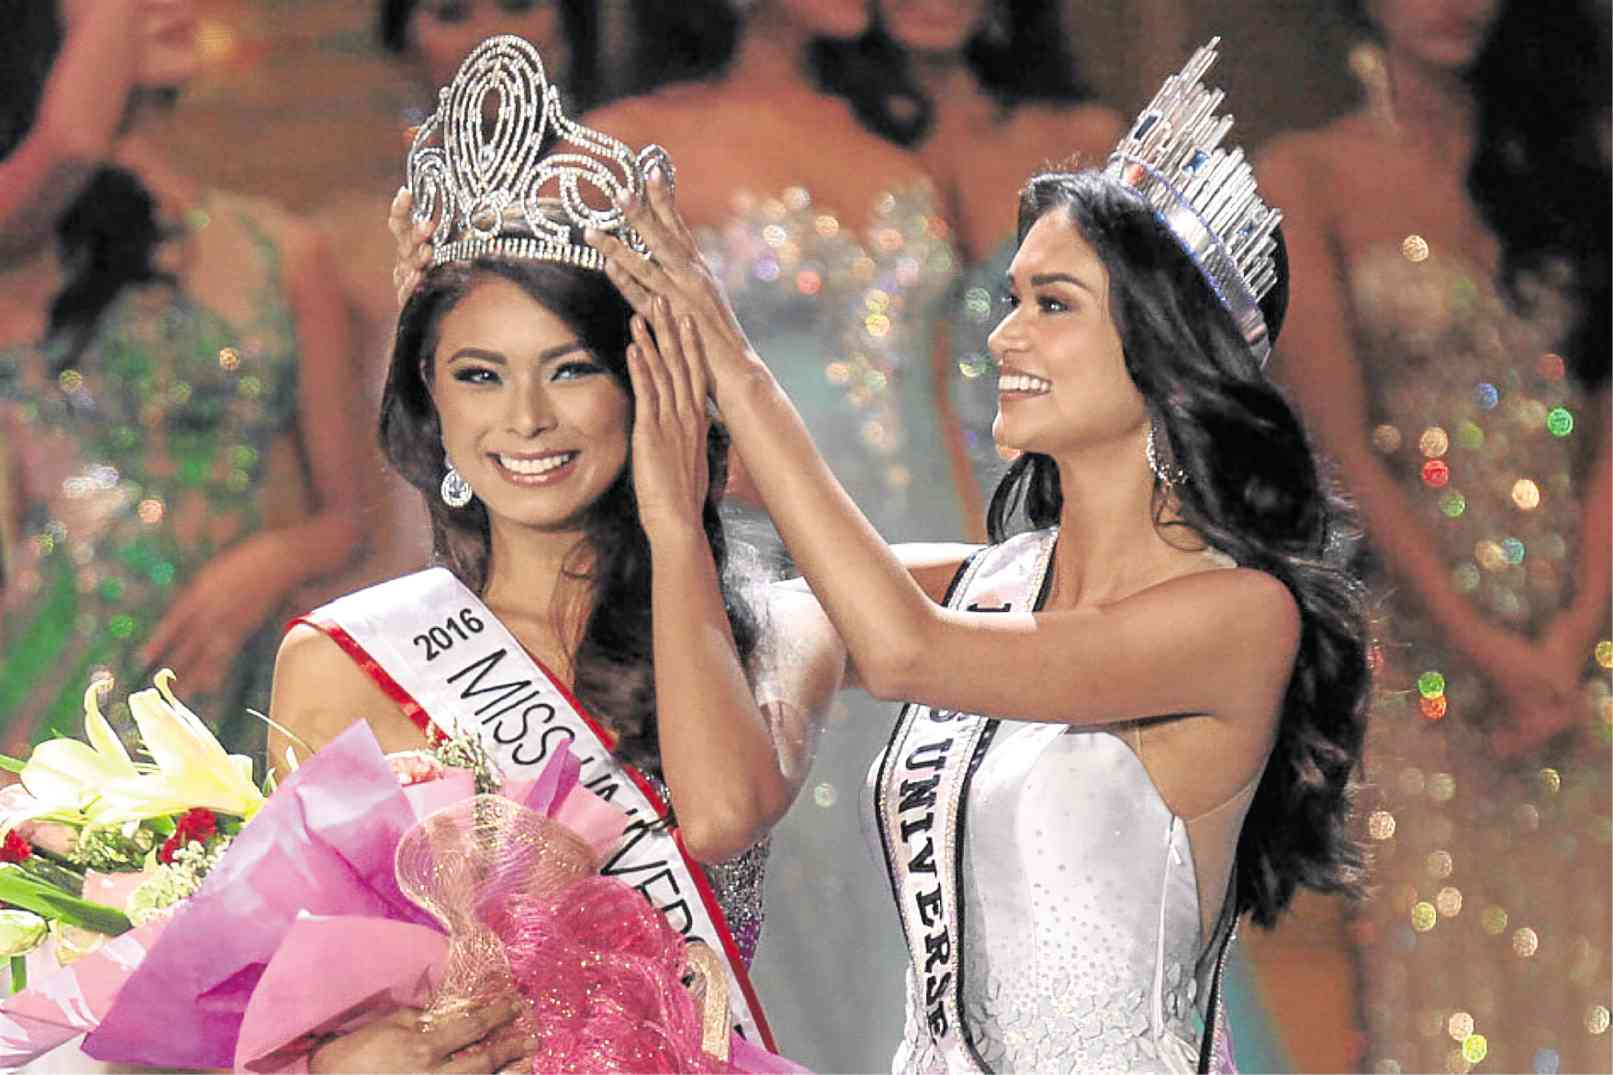 Maxine confident of 'back-to-back win' for PH in Miss Universe